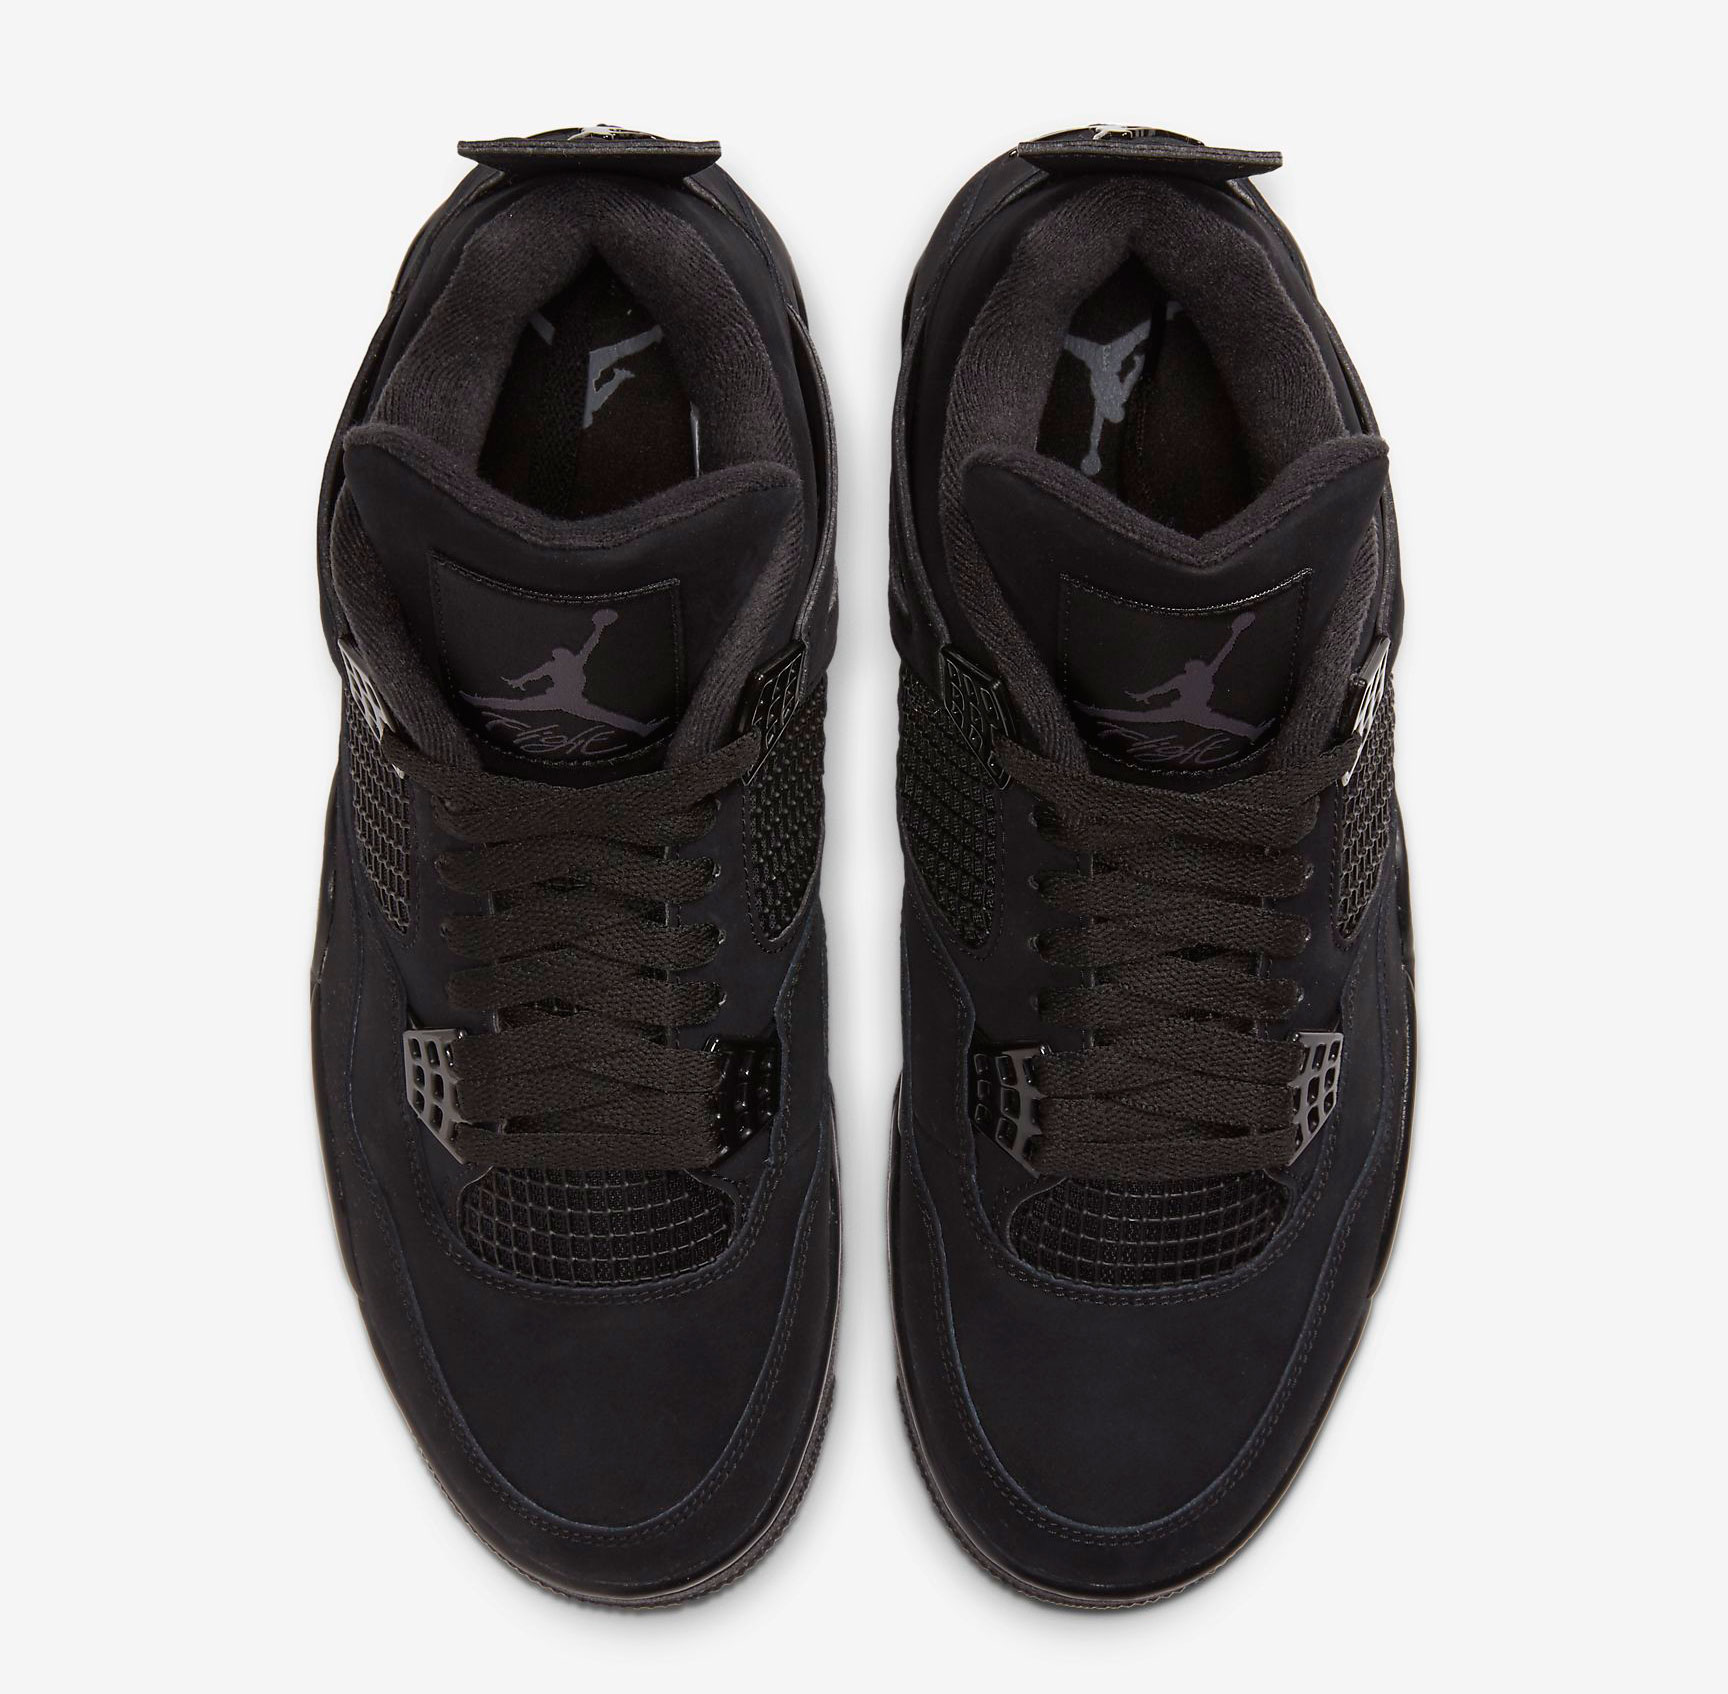 air-jordan-4-black-cat-2020-release-date-4